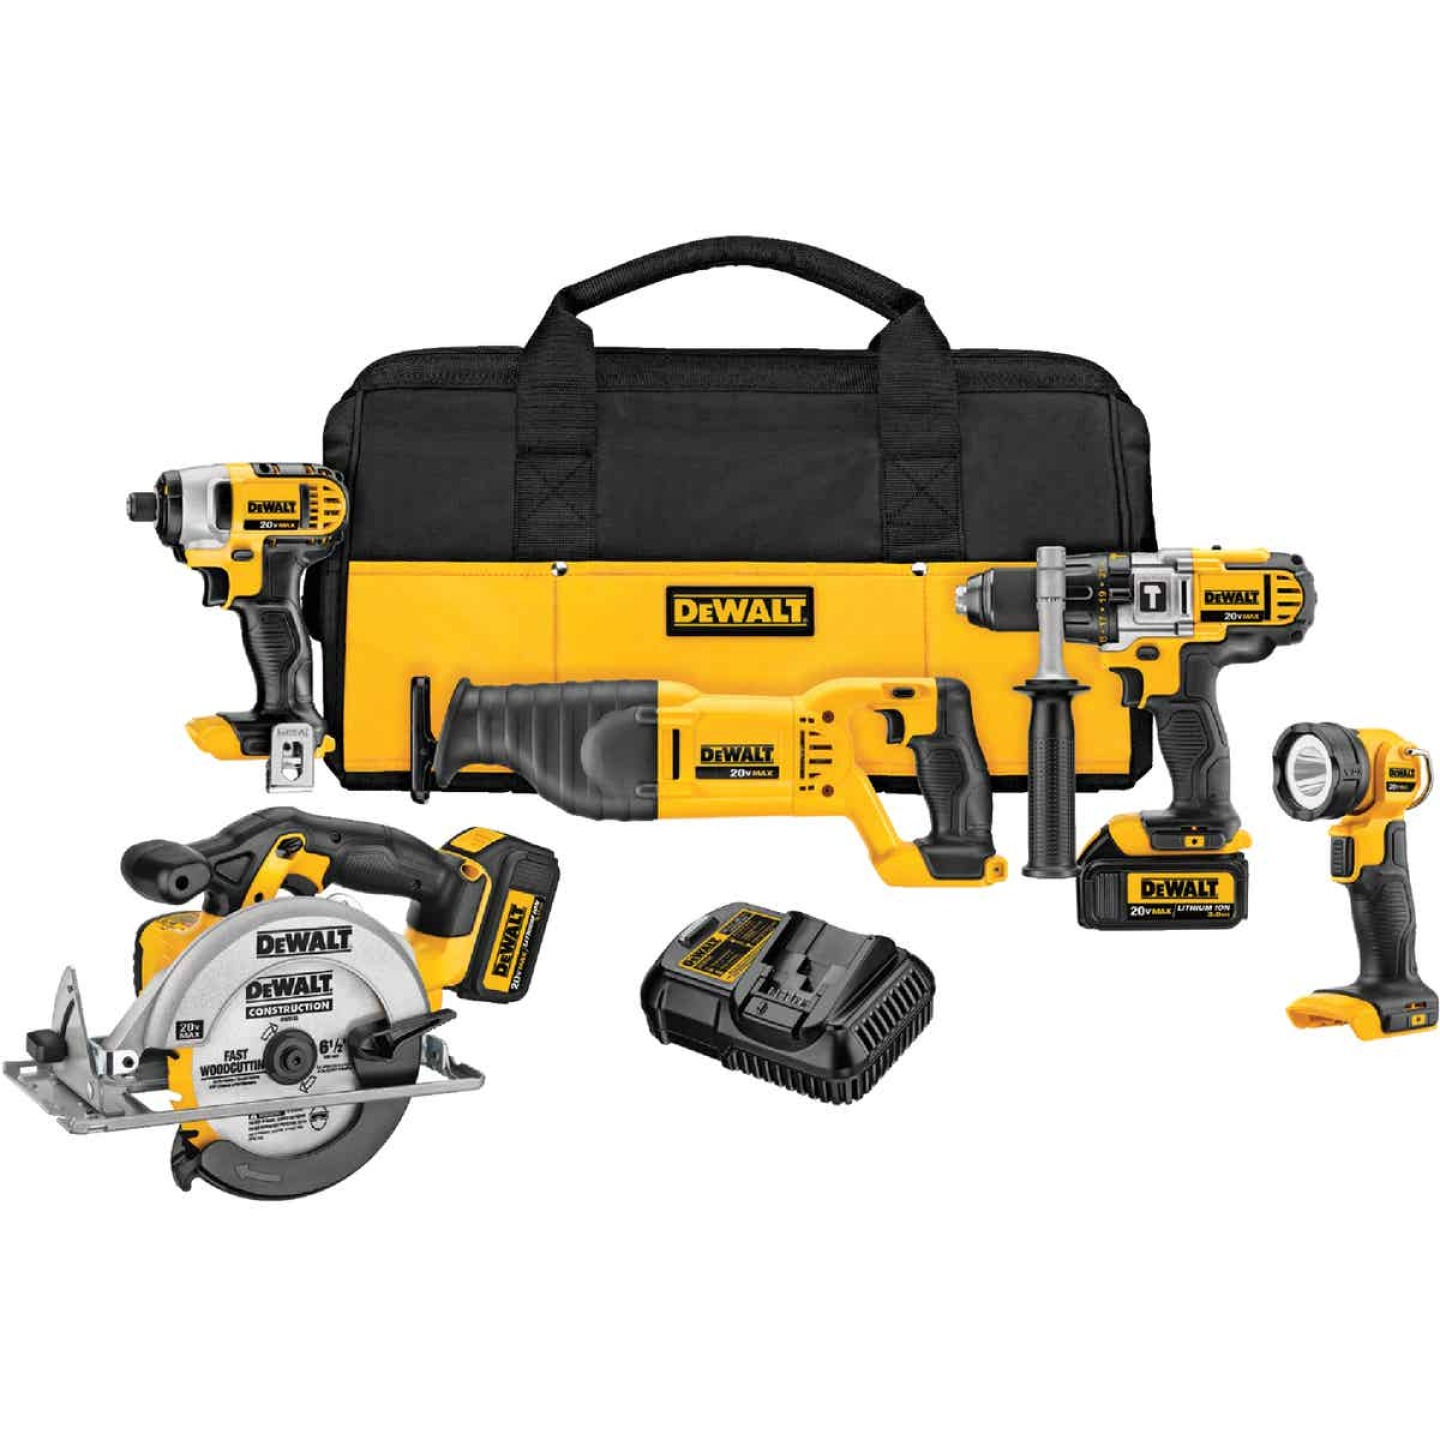 DeWalt 5-Tool 20V MAX XR Lithium-Ion Hammer Drill, Reciprocating Saw, Impact Driver, Circular Saw & Work Light Cordless Tool Combo Kit Image 1